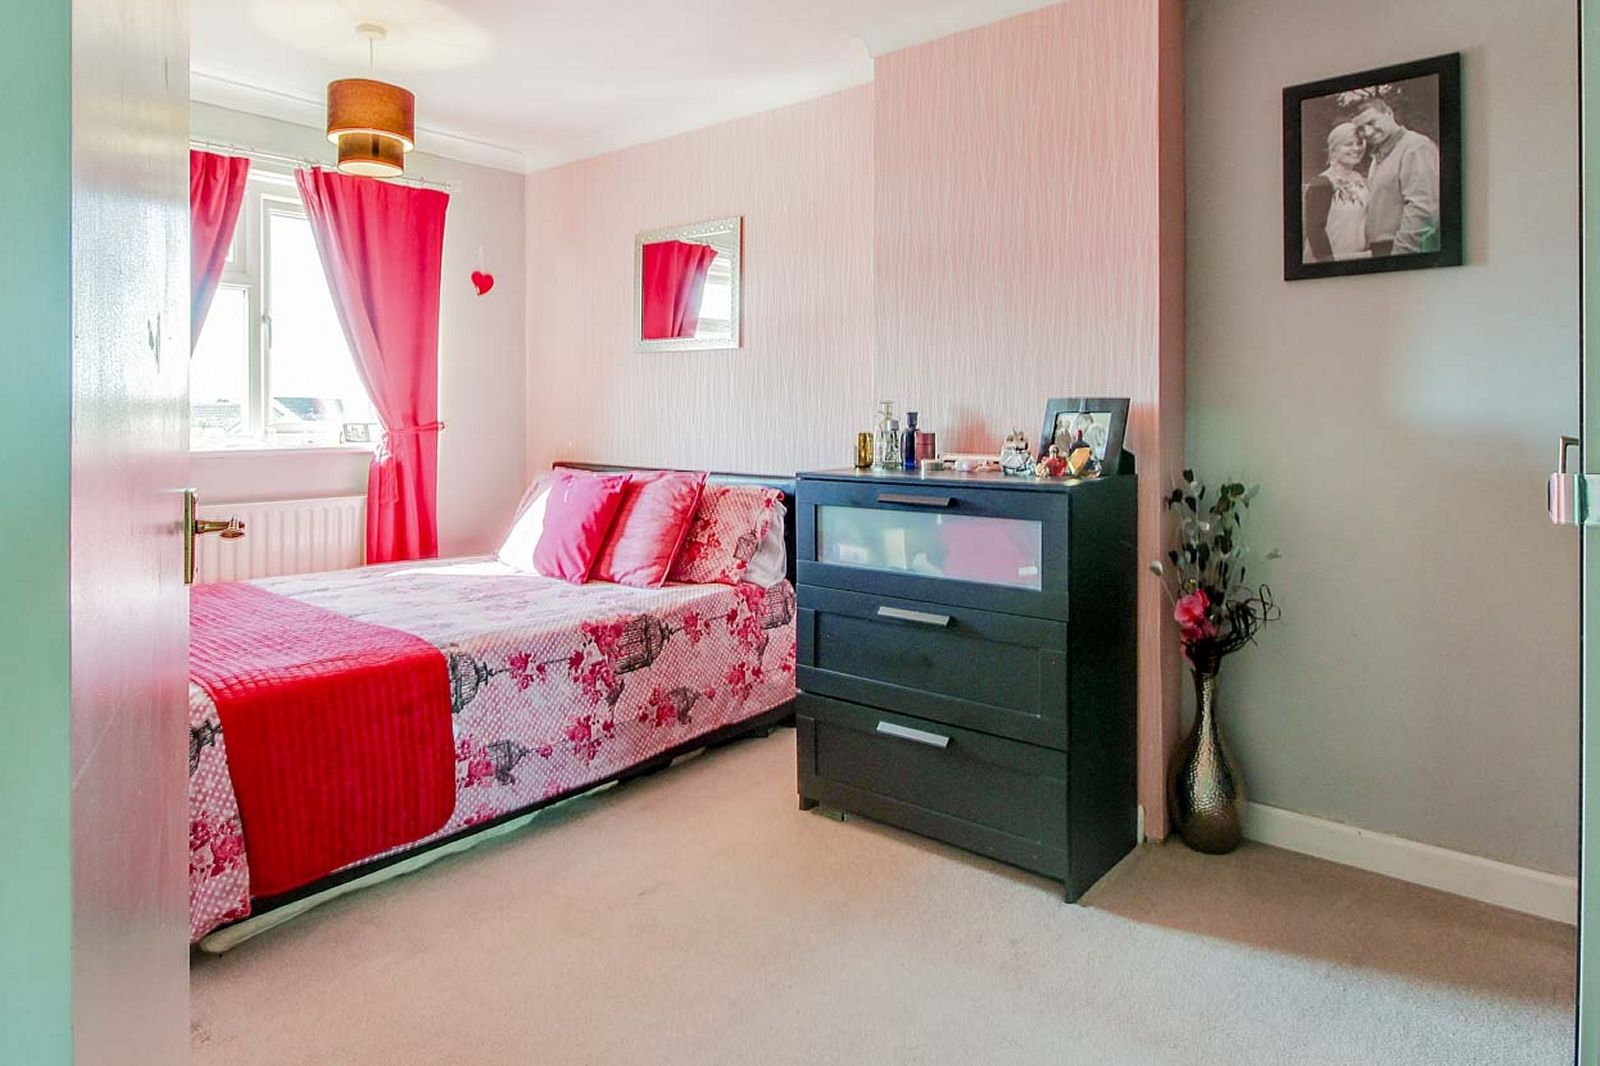 3 bed House for sale in East Preston - Bedroom (Property Image 4)